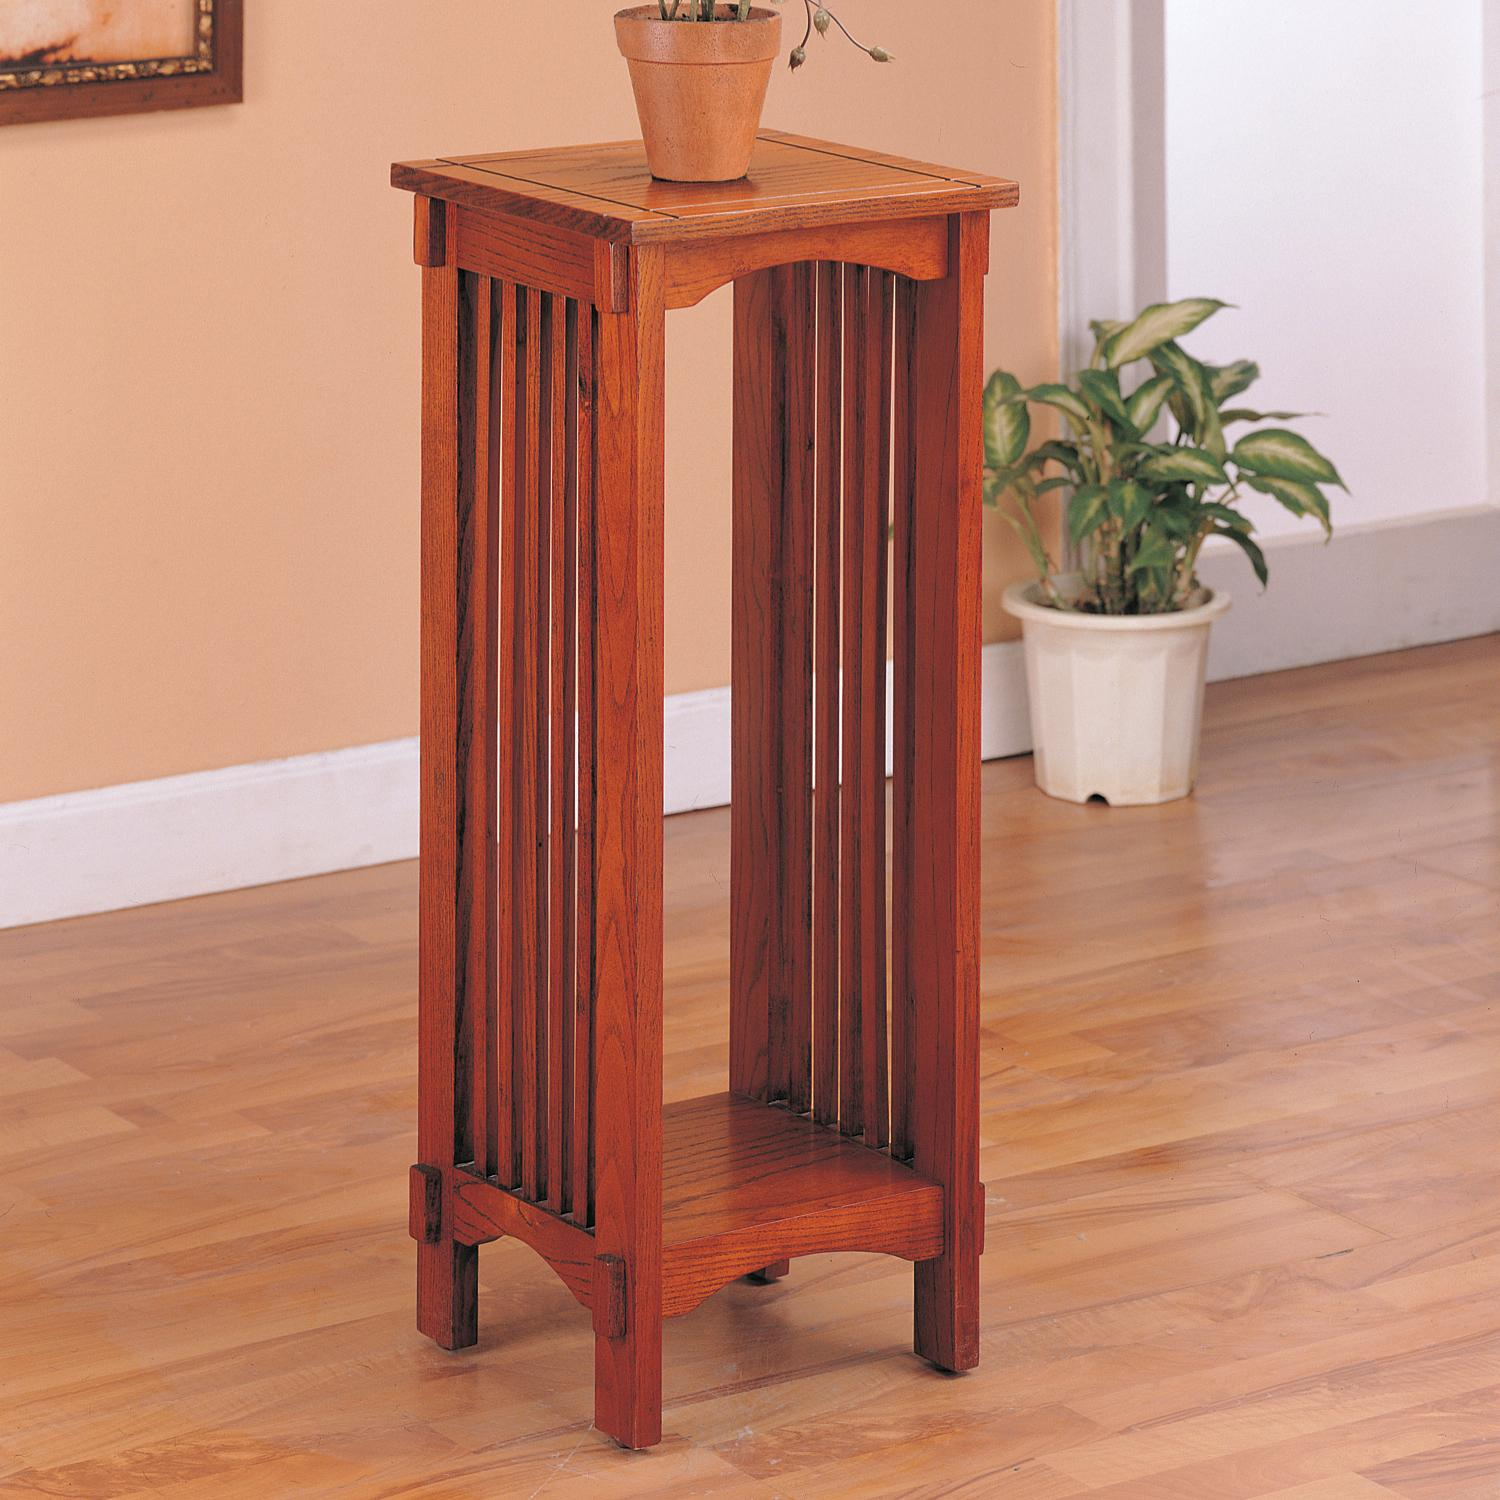 Coaster Accent Stands Square Plant Stand - Item Number: 4040